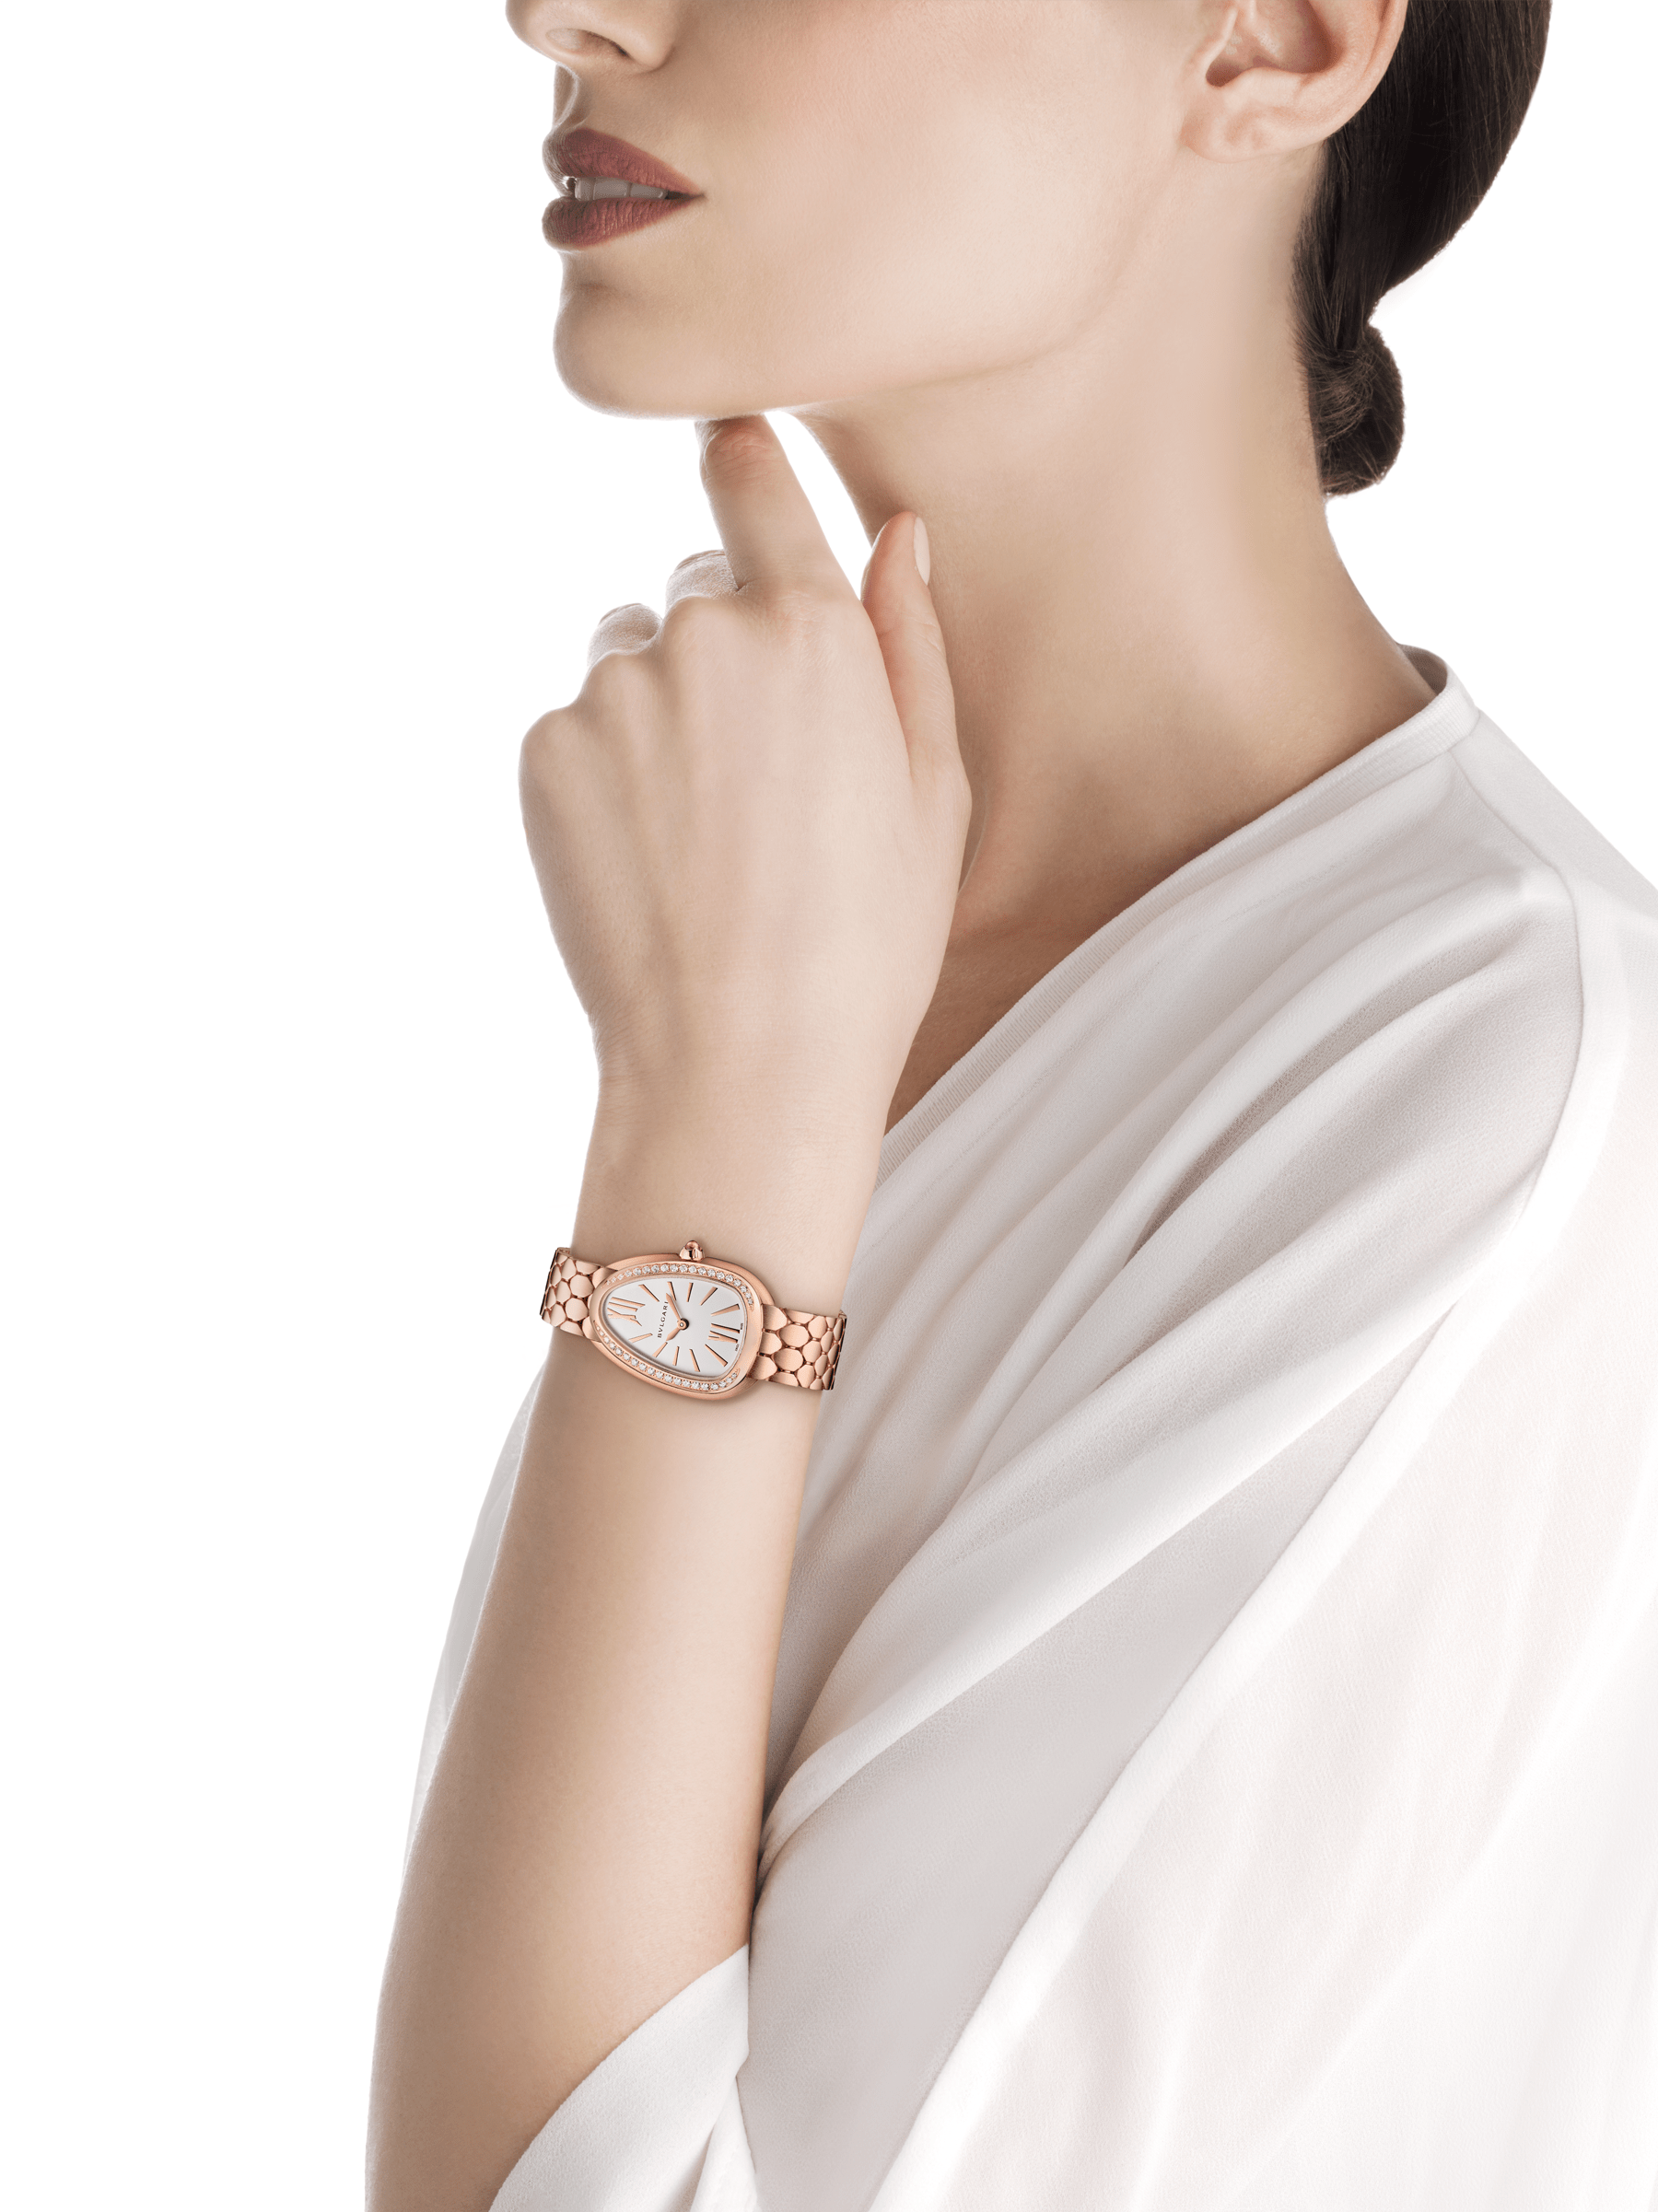 Serpenti Seduttori watch with 18 kt rose gold case, 18 kt rose gold bezel set with diamonds, white silver opaline dial and brushed 18 kt rose gold bracelet. 103169 image 4